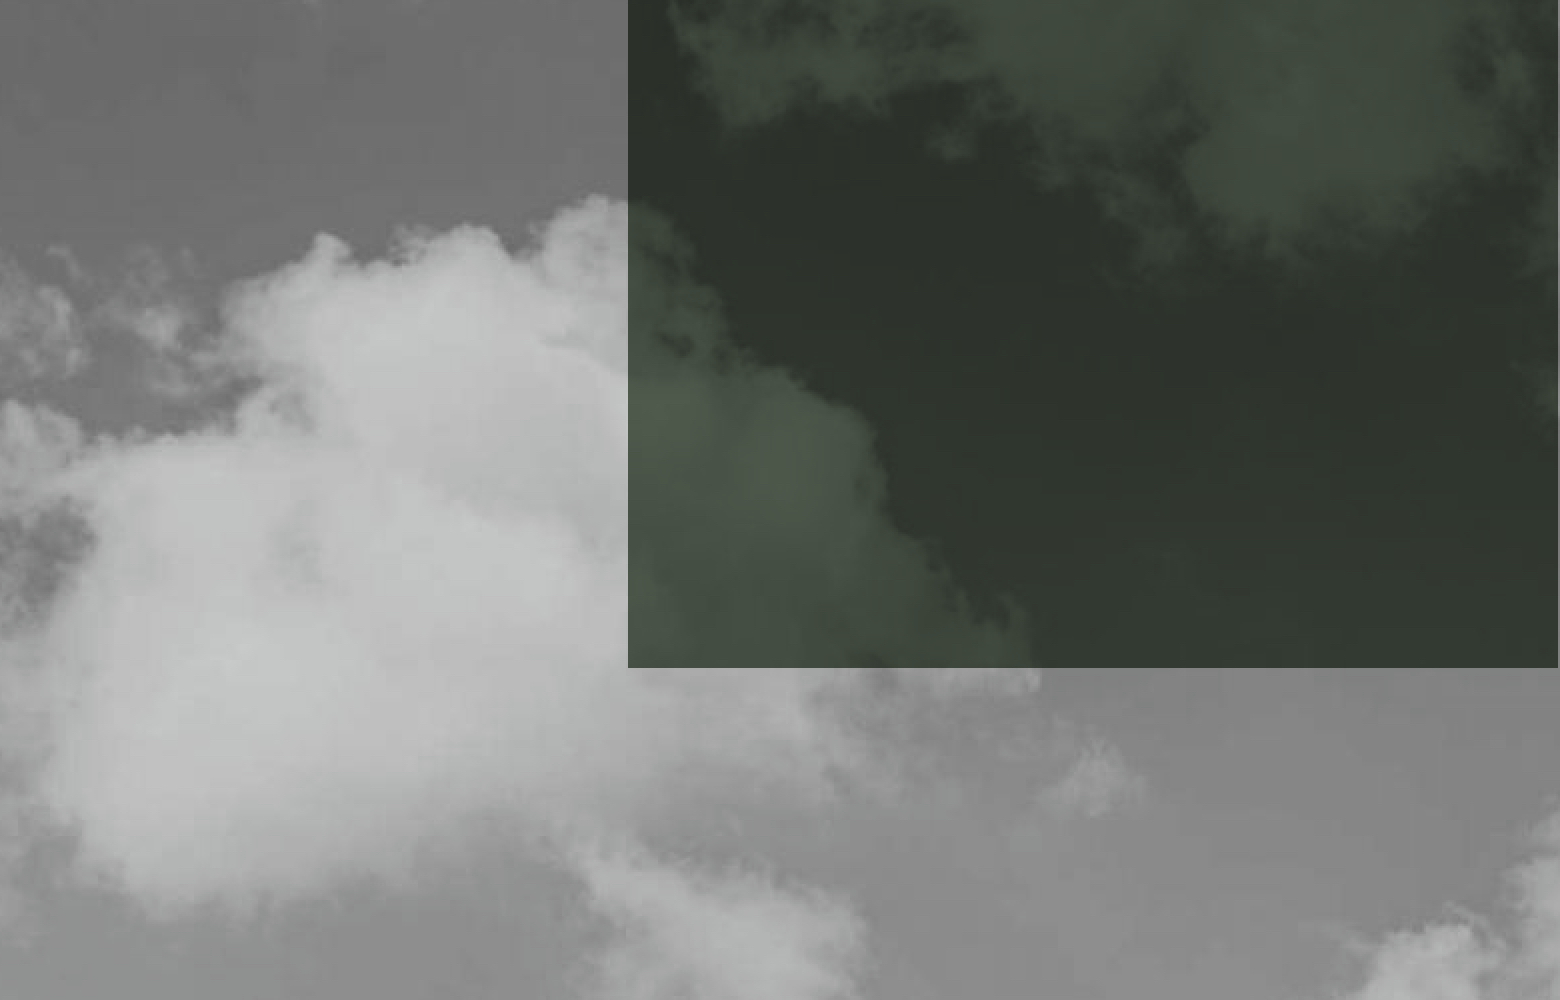 Abstract illustration, clouds on grey and green.